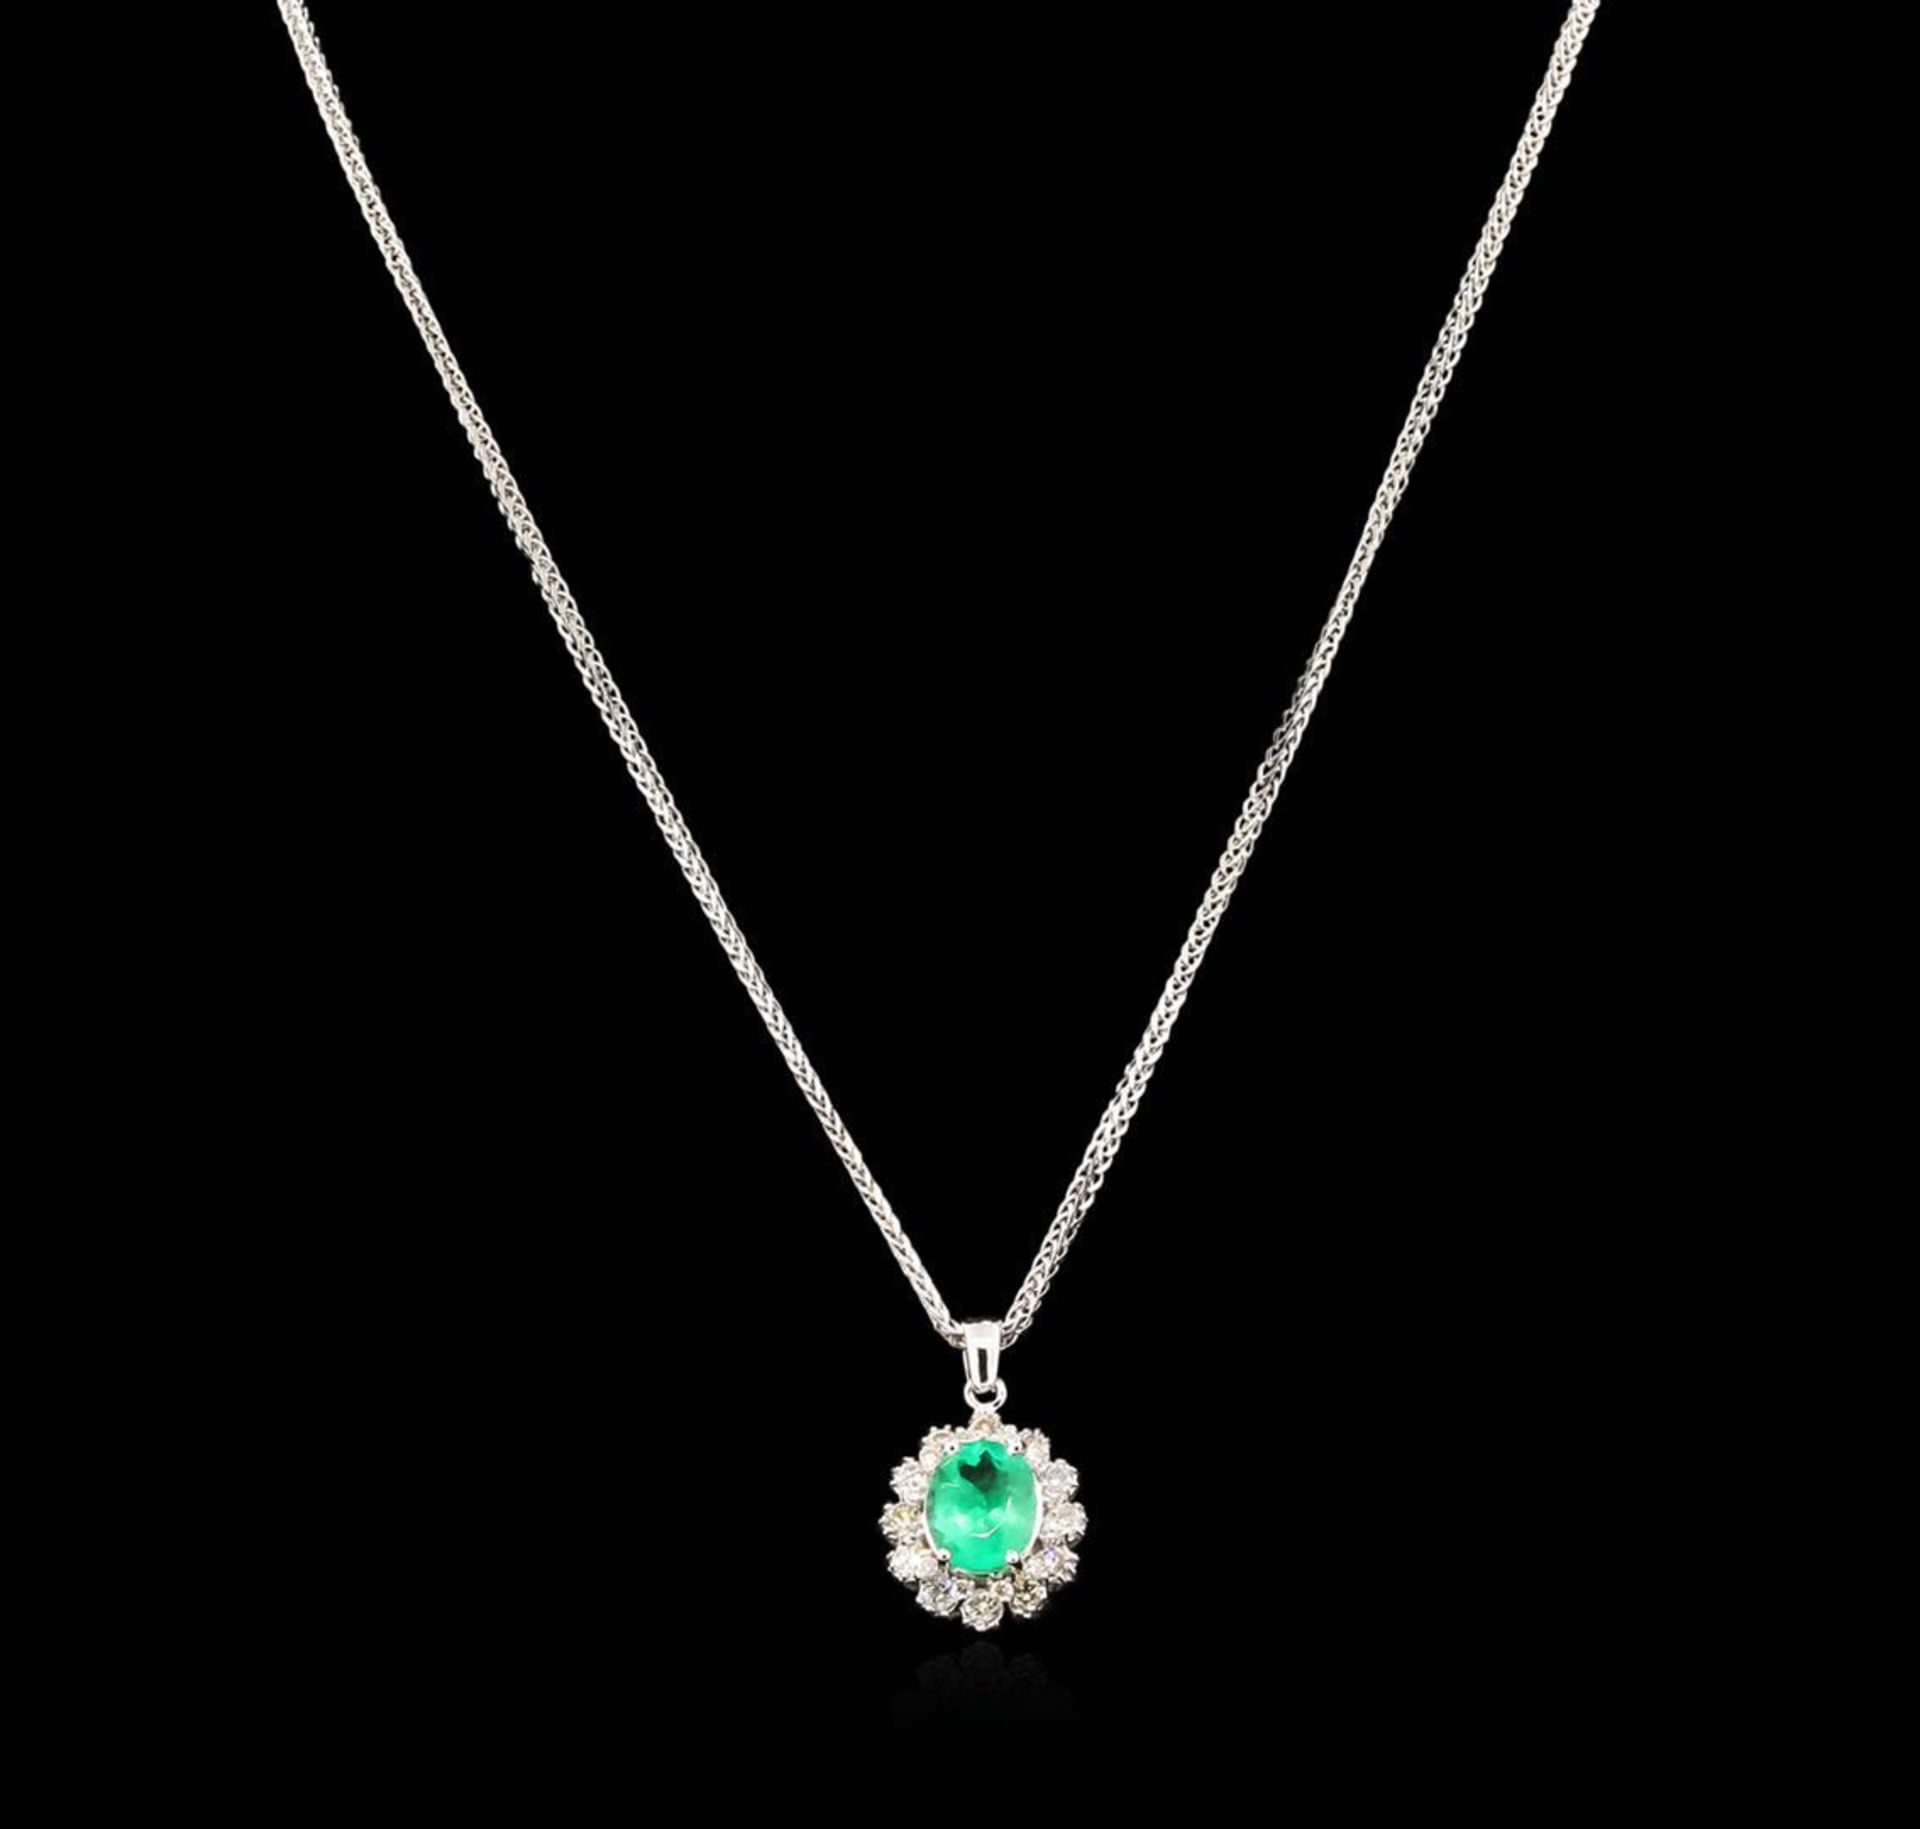 2.52 ctw Emerald and Diamond Pendant With Chain - 14KT White Gold - Image 2 of 3